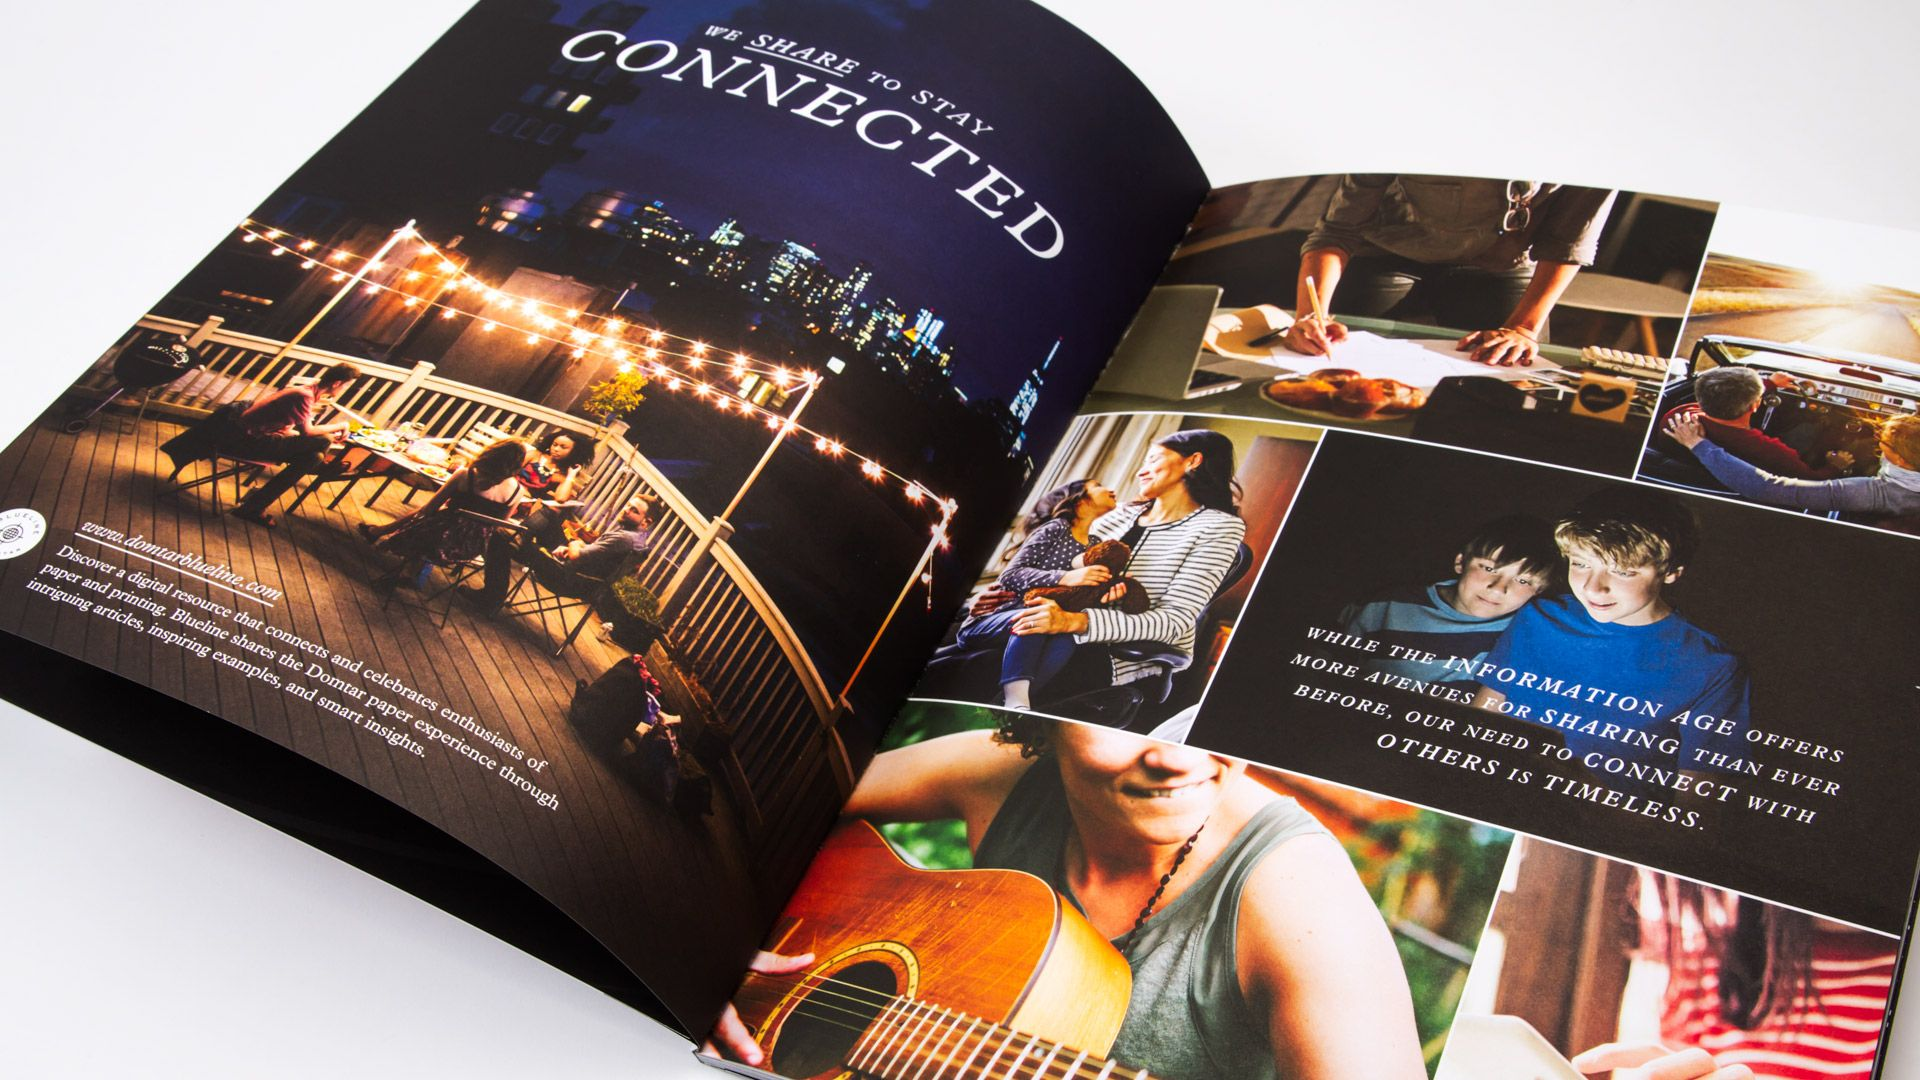 Domtar Share On Cougar  Promotional Brochure Design And Layout